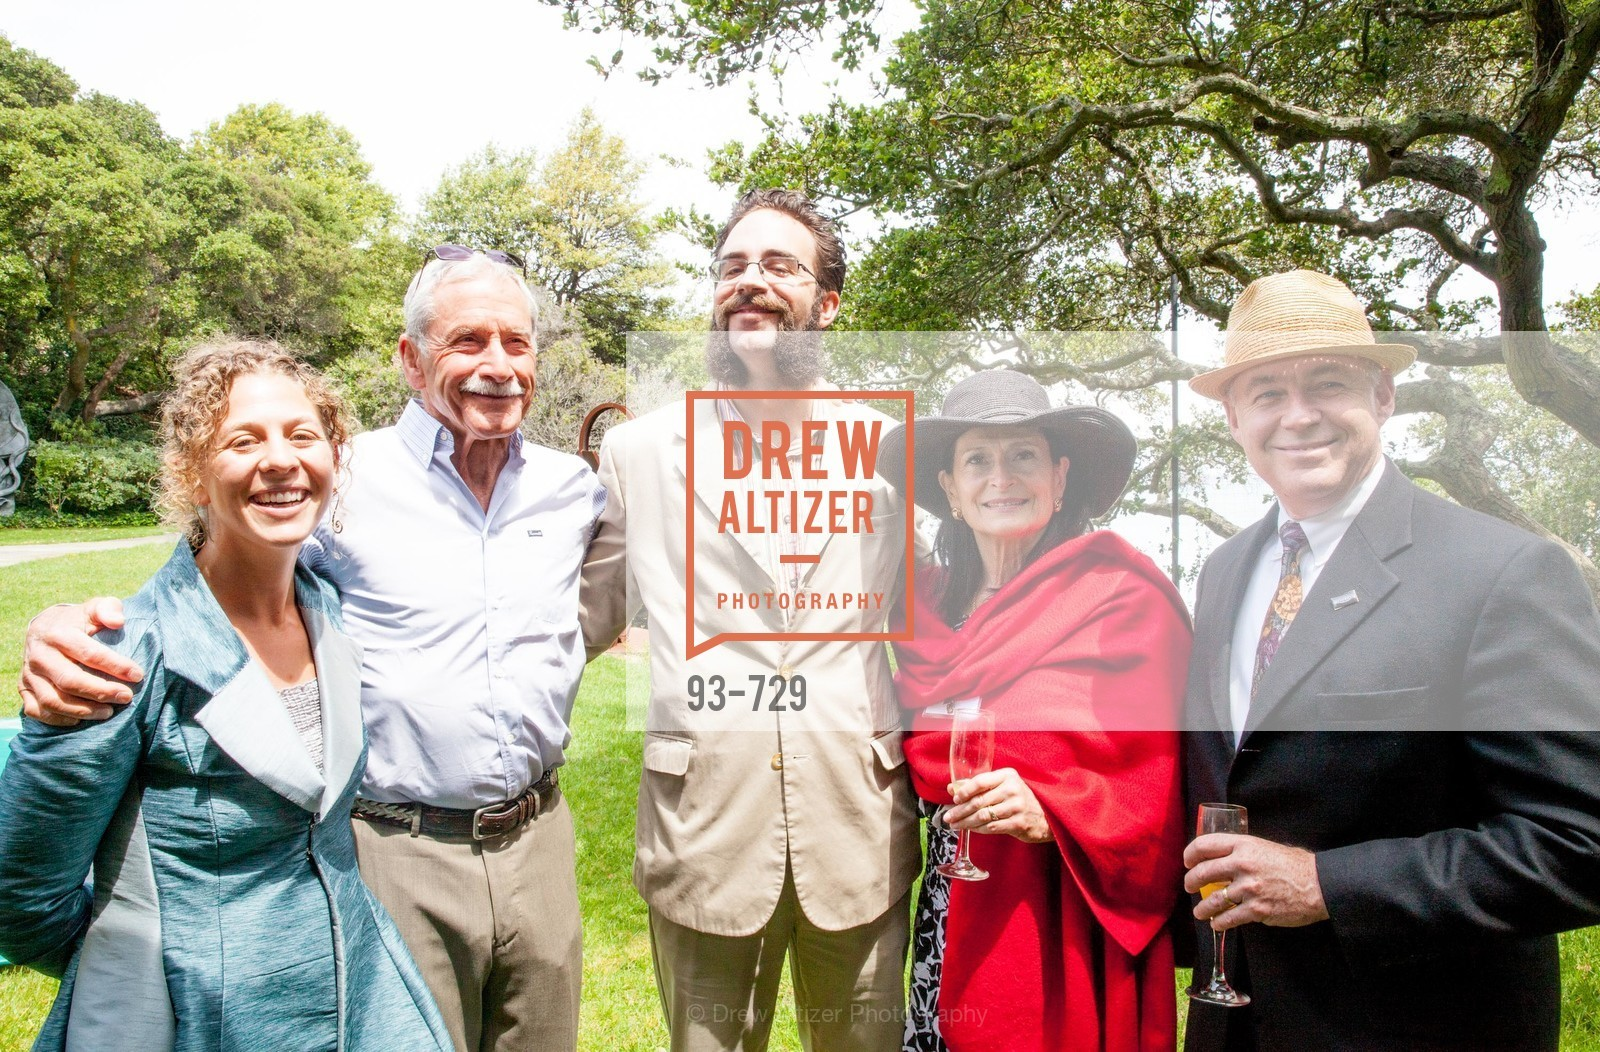 Ava Roy, Maxwell Drever, Charles Gurke, Carol Campbell, Rory Campbell, THE TRUST FOR PUBLIC LAND Luncheon Hosted by THE DREVER FAMILY FOUNDATION, US, May 14th, 2015,Drew Altizer, Drew Altizer Photography, full-service agency, private events, San Francisco photographer, photographer california